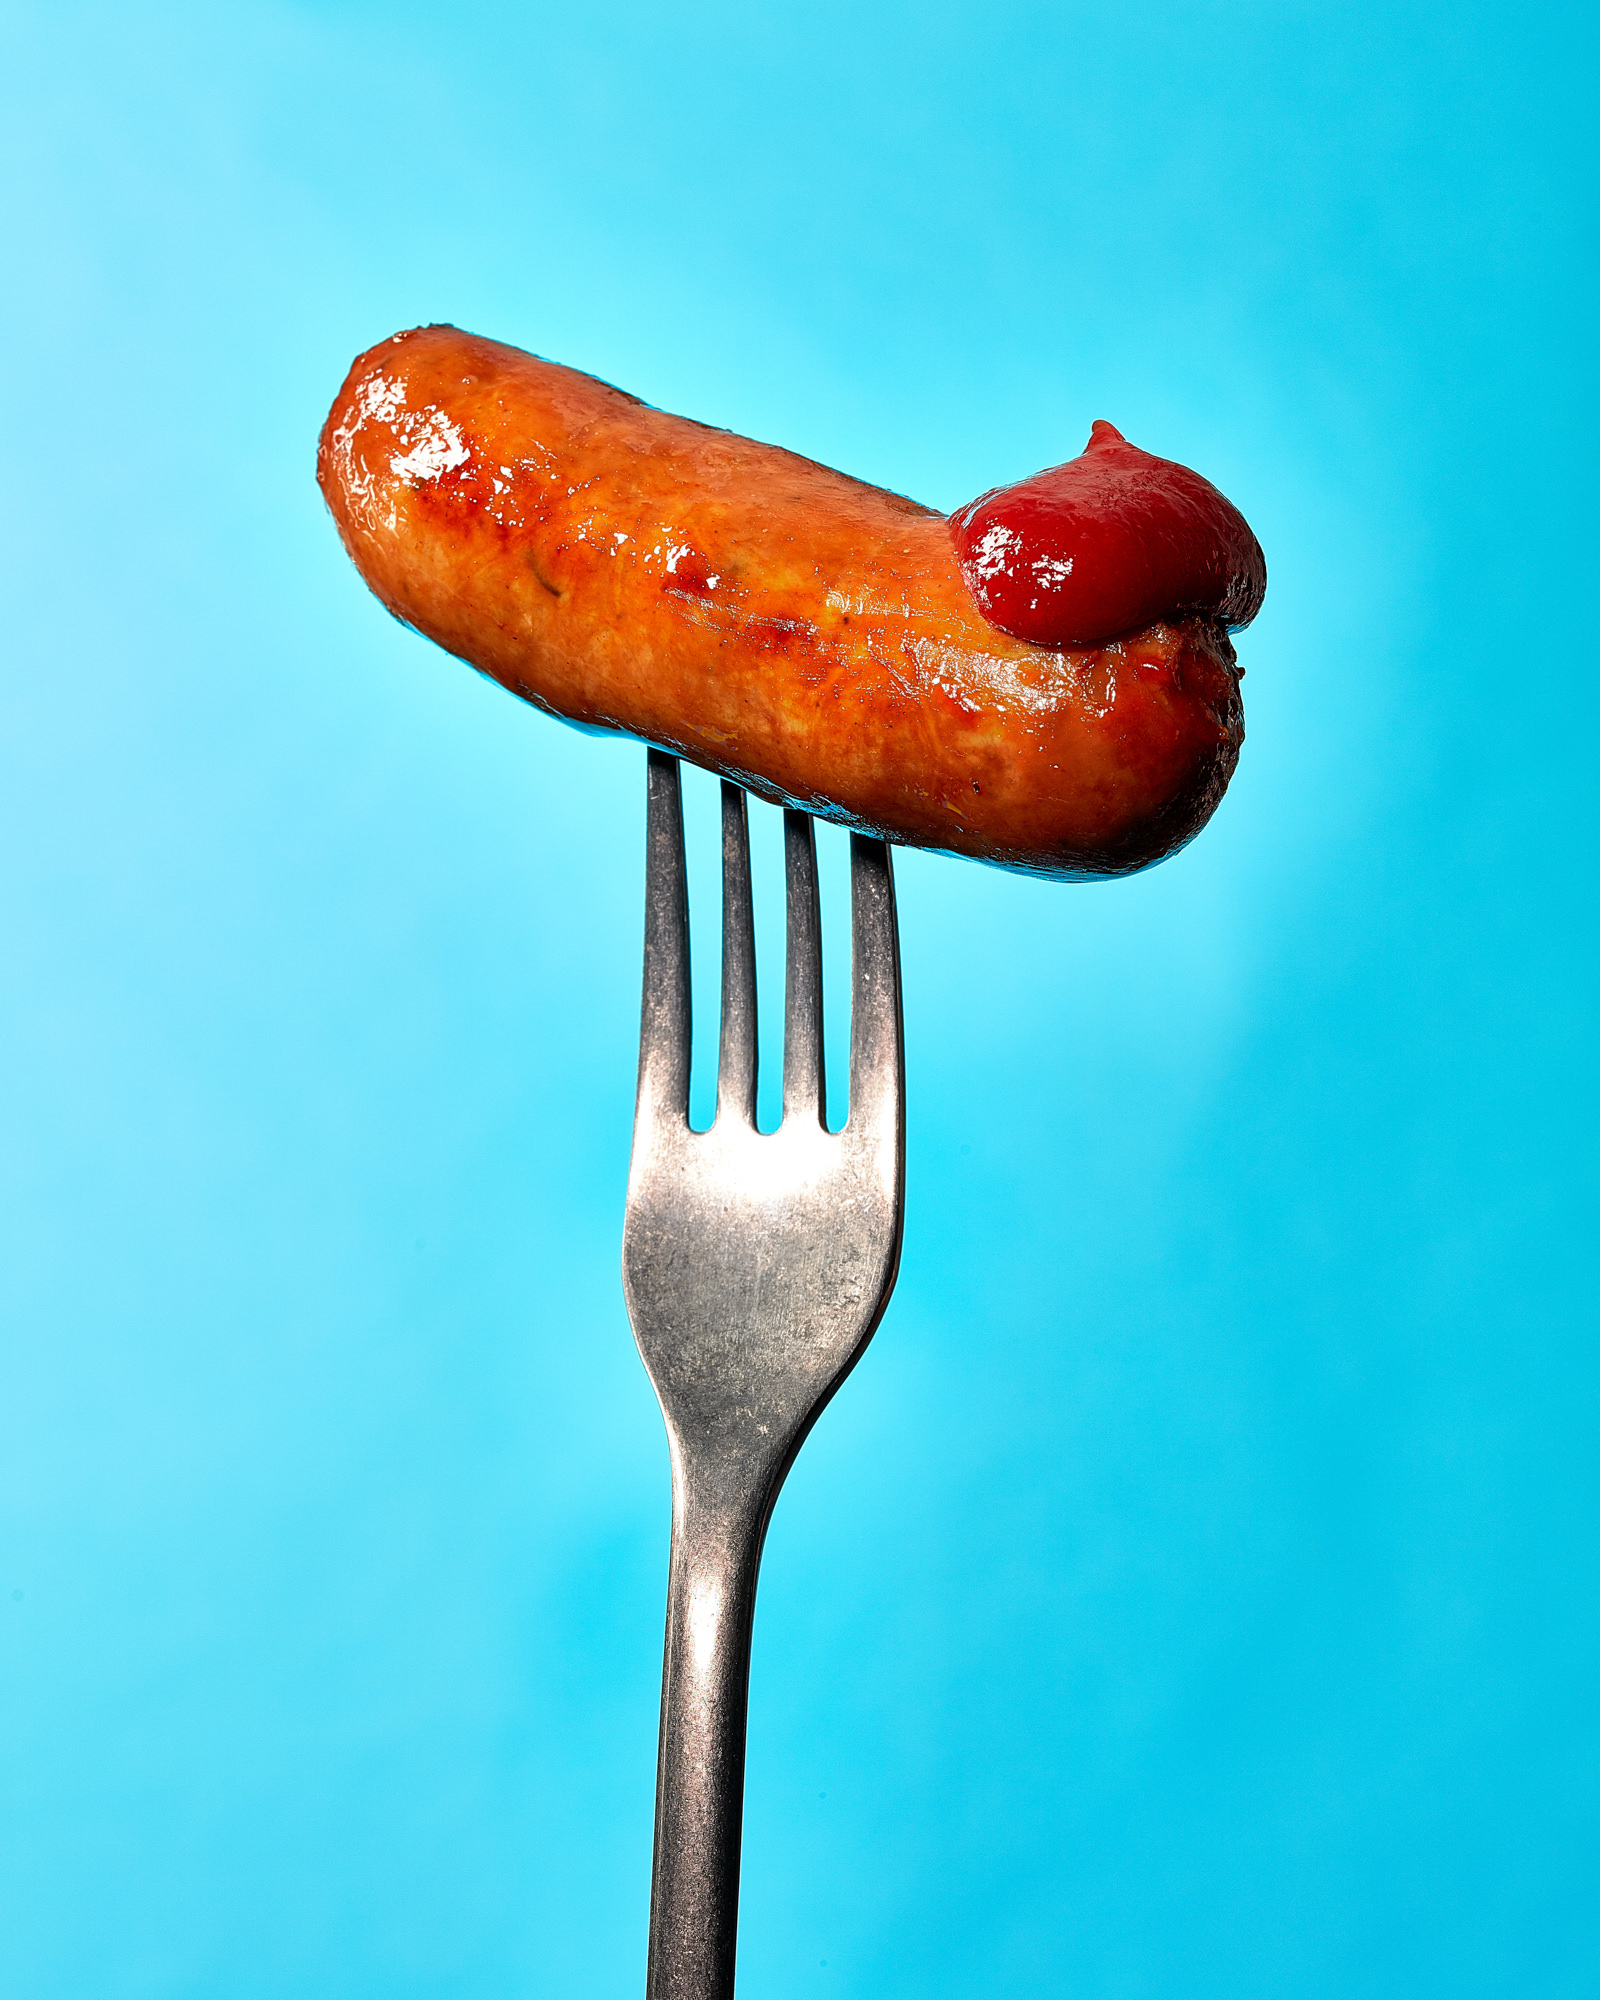 Classic british sausage photographed with tomato ketchup